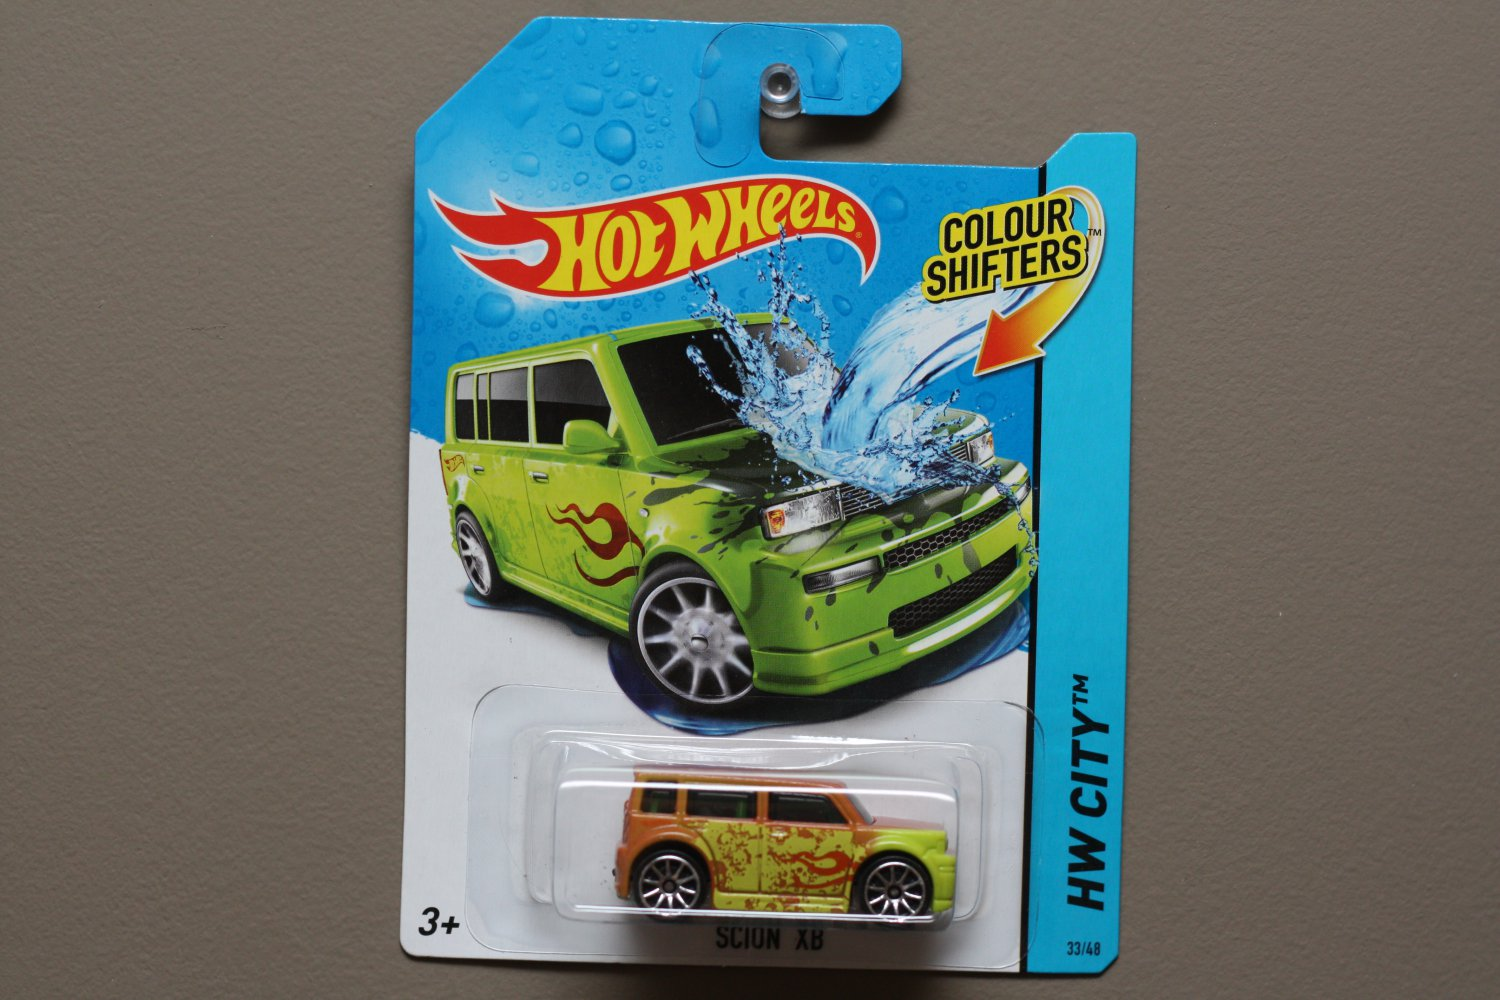 Hot Wheels 2014 Color Shifters Scion xB (brown to green)